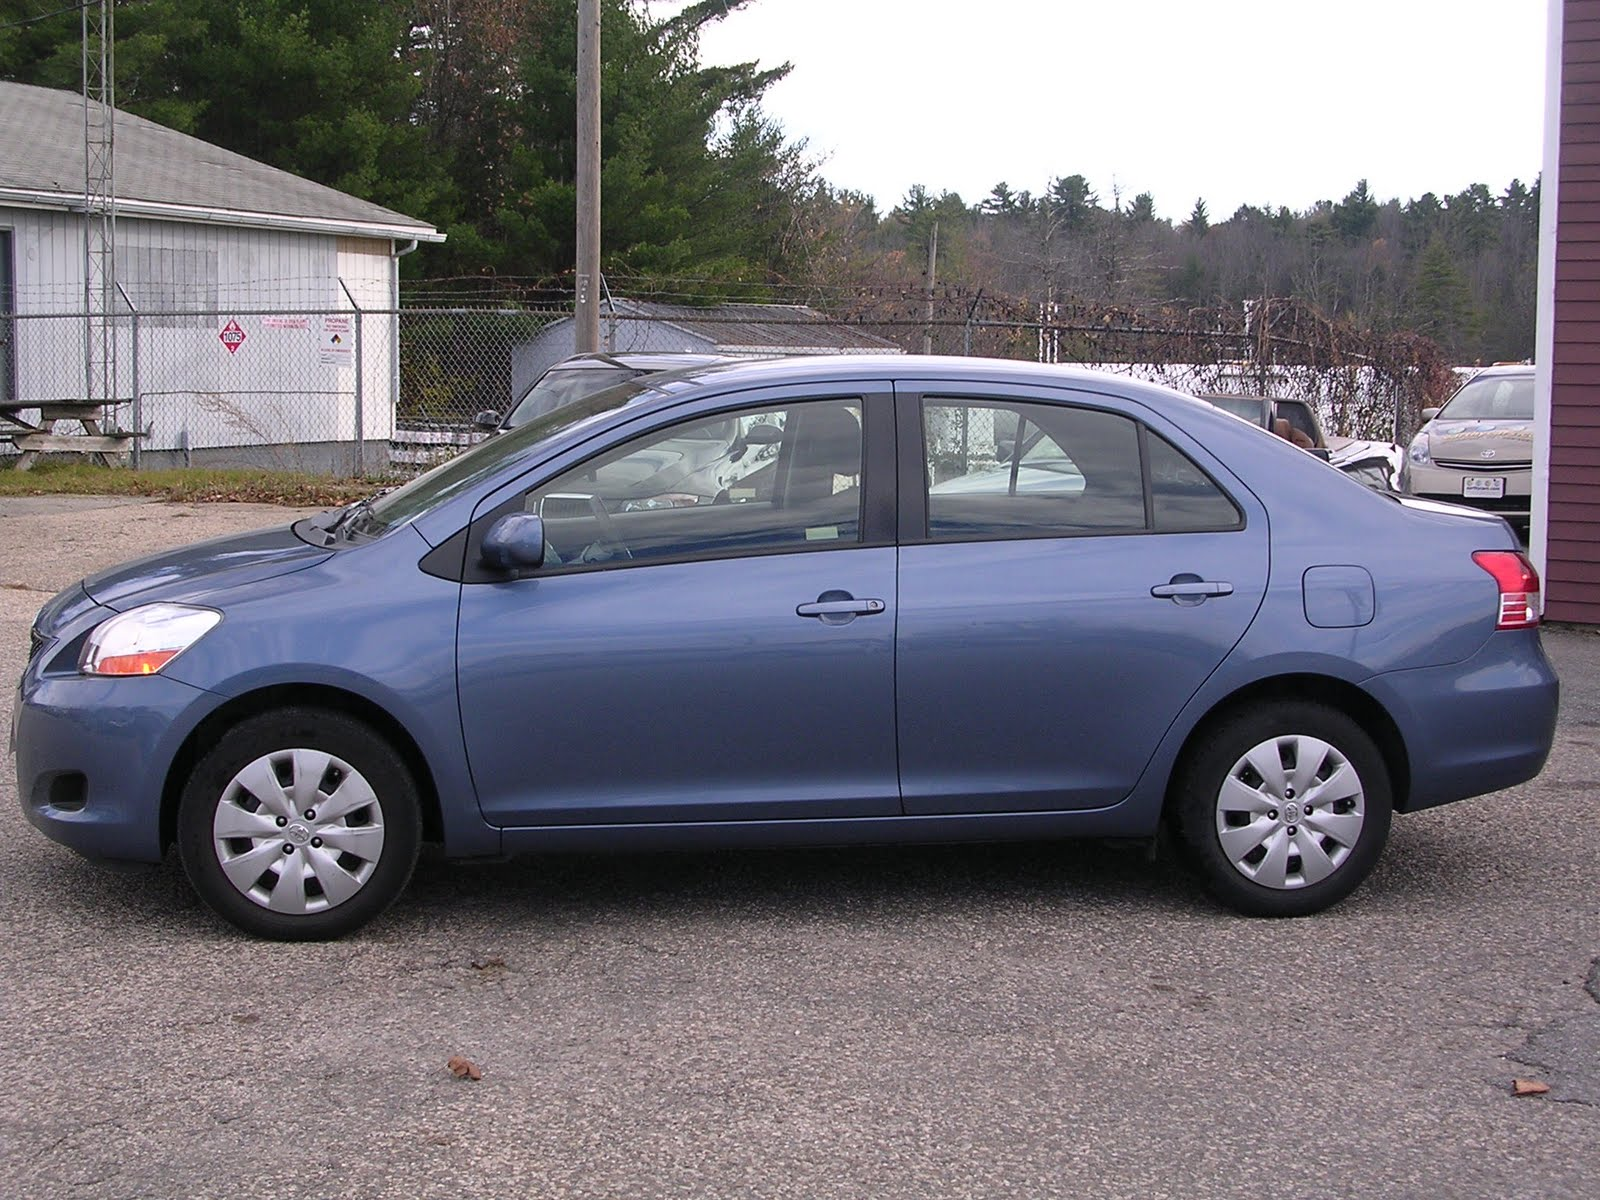 earthy cars blog earthy car of the week 2010 blue toyota yaris sedan. Black Bedroom Furniture Sets. Home Design Ideas